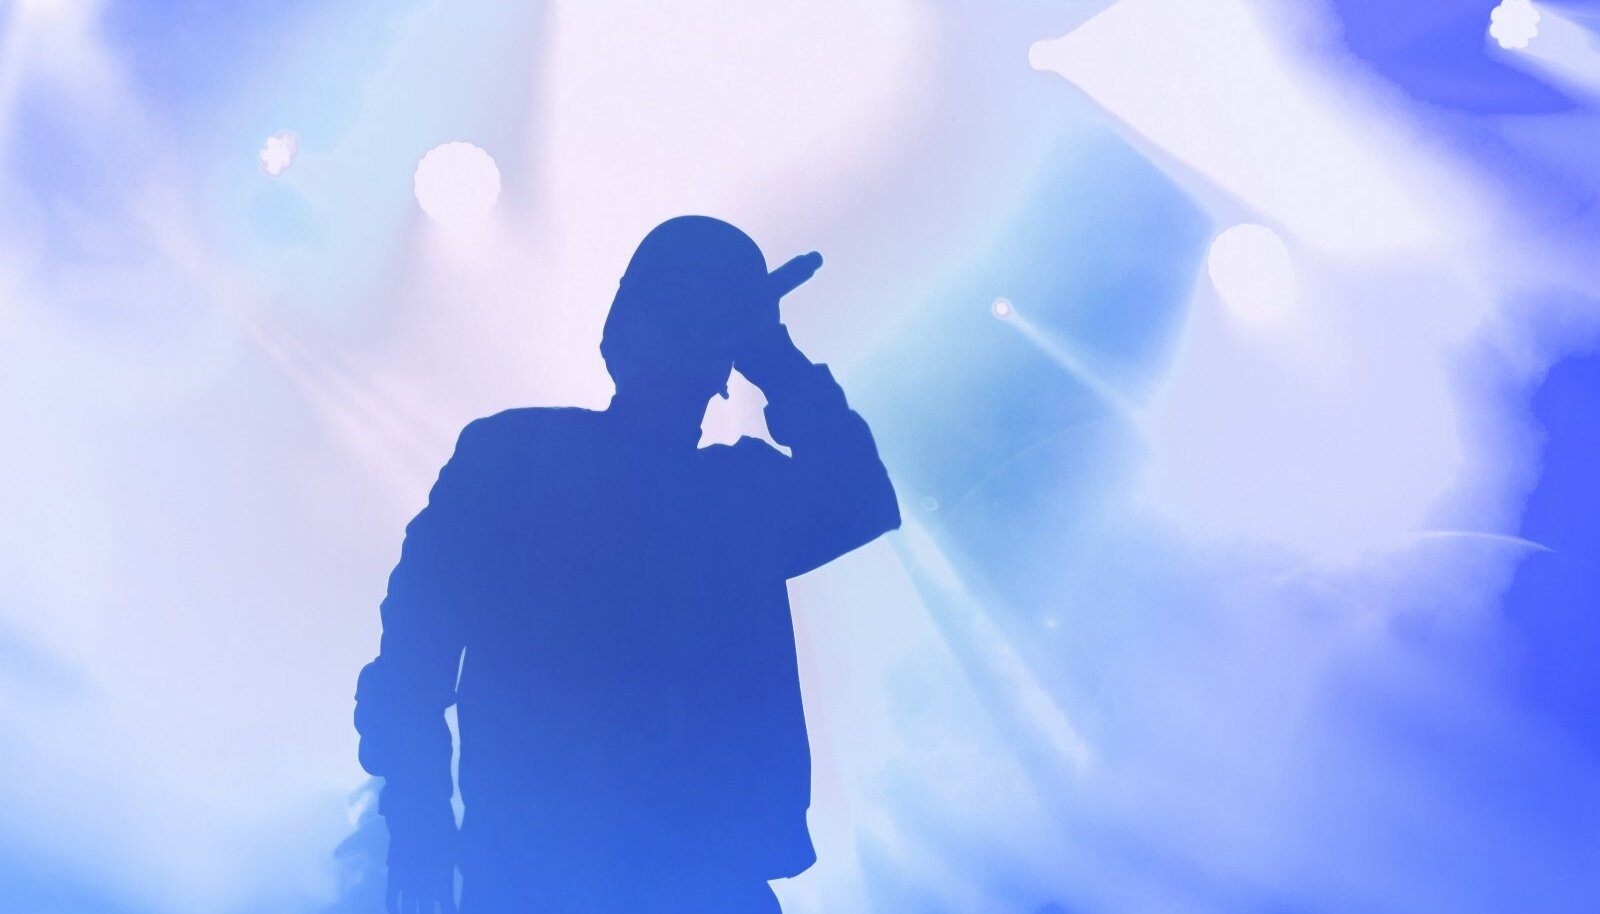 Stock,Photo,Of,Young,Rap,Singer,With,Mic,In,Hand